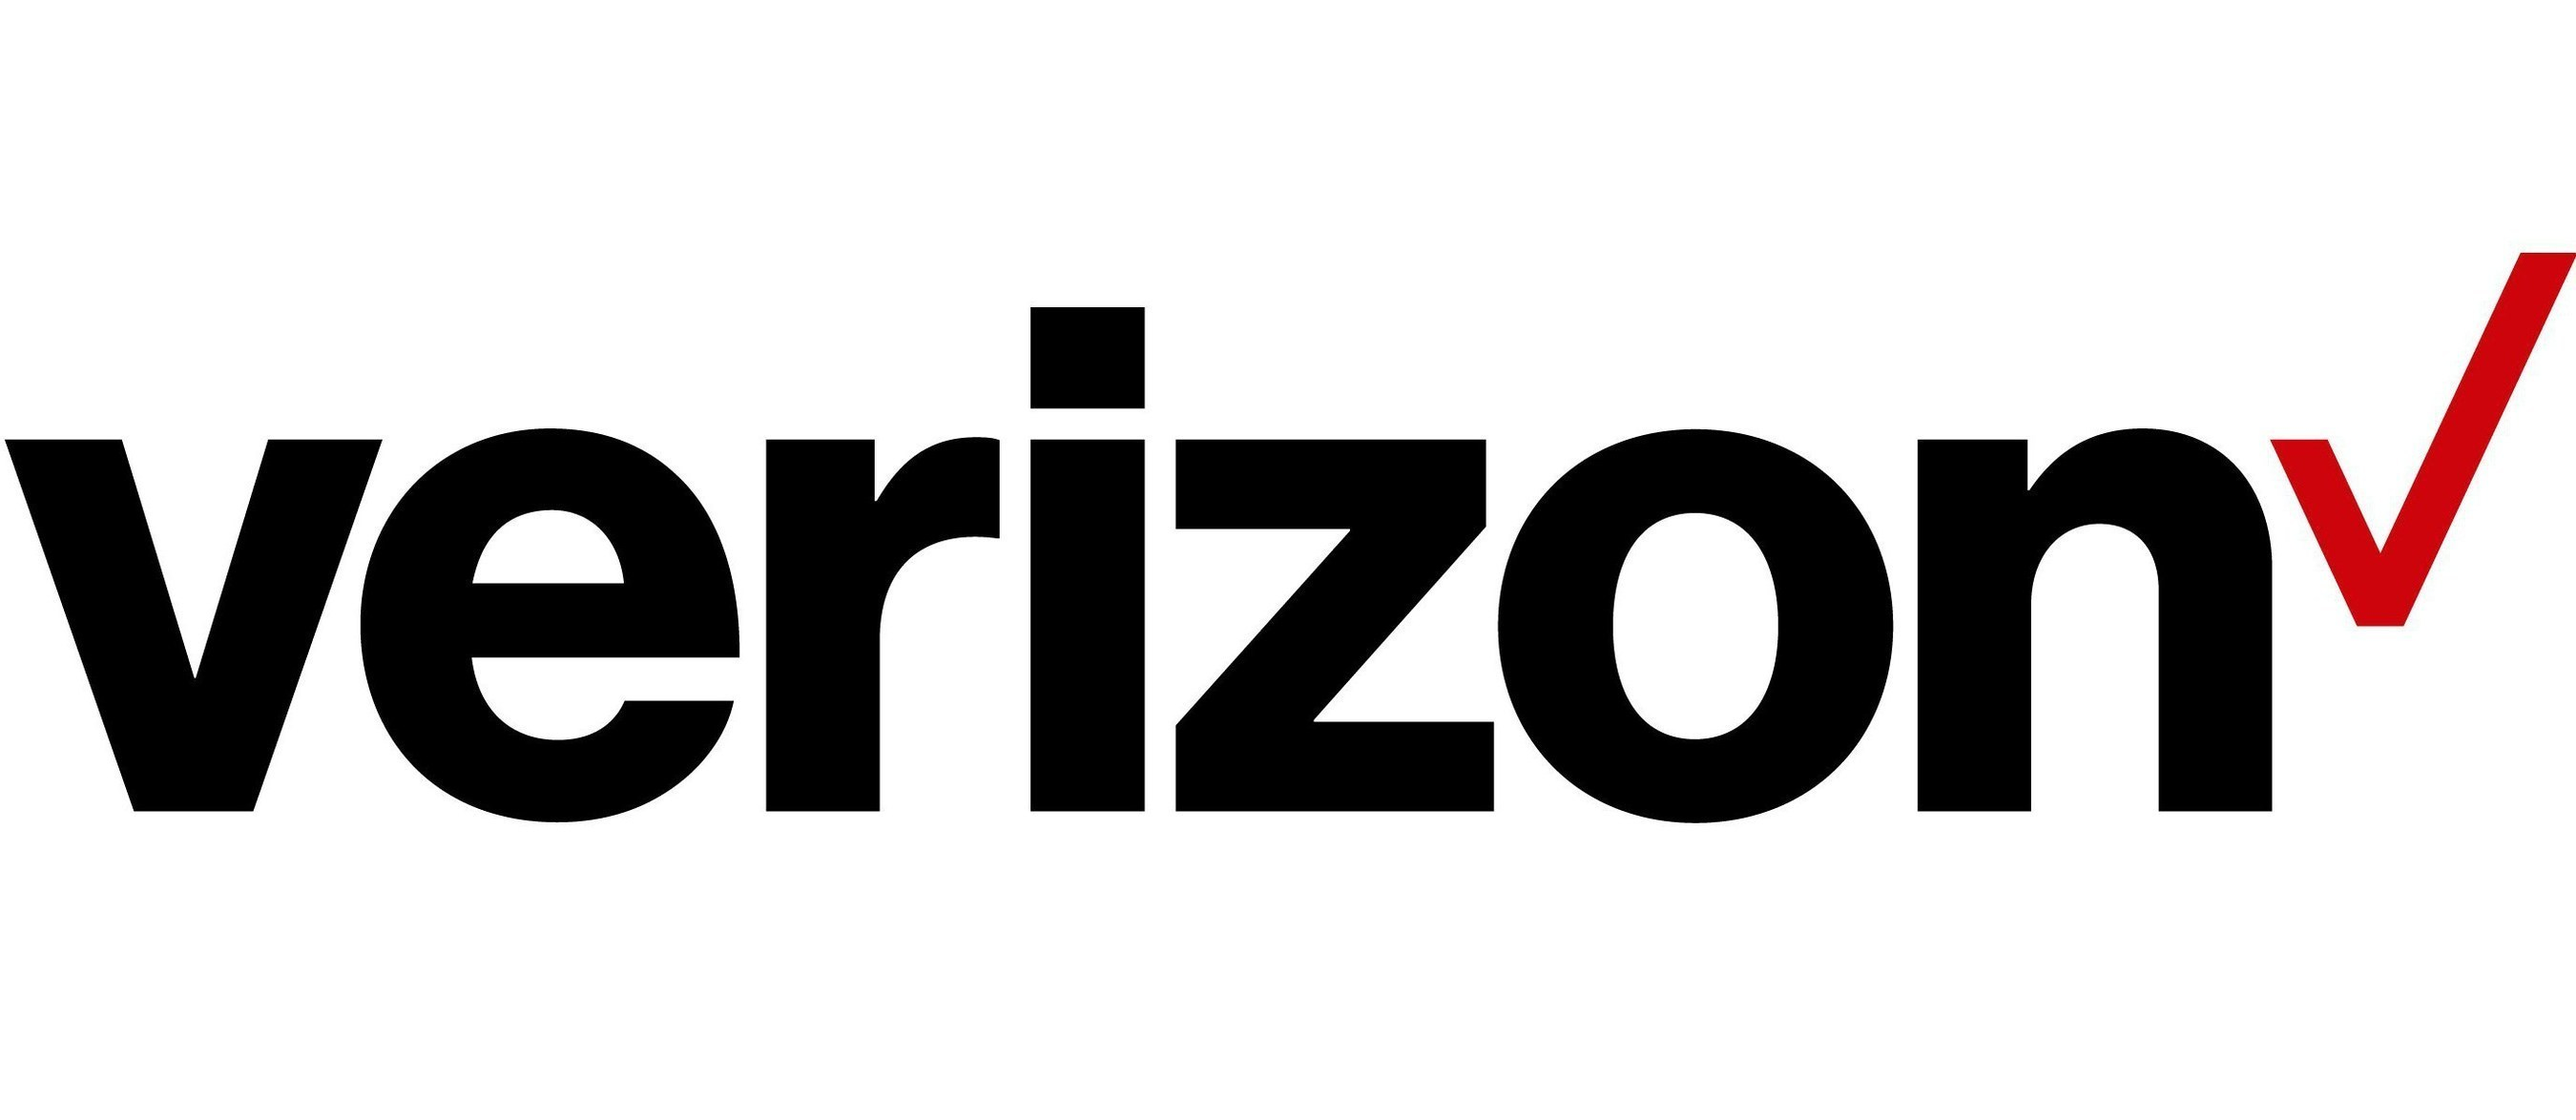 NYSE: VZ | Verizon Communications Inc. Common Stock News, Ratings, and Charts